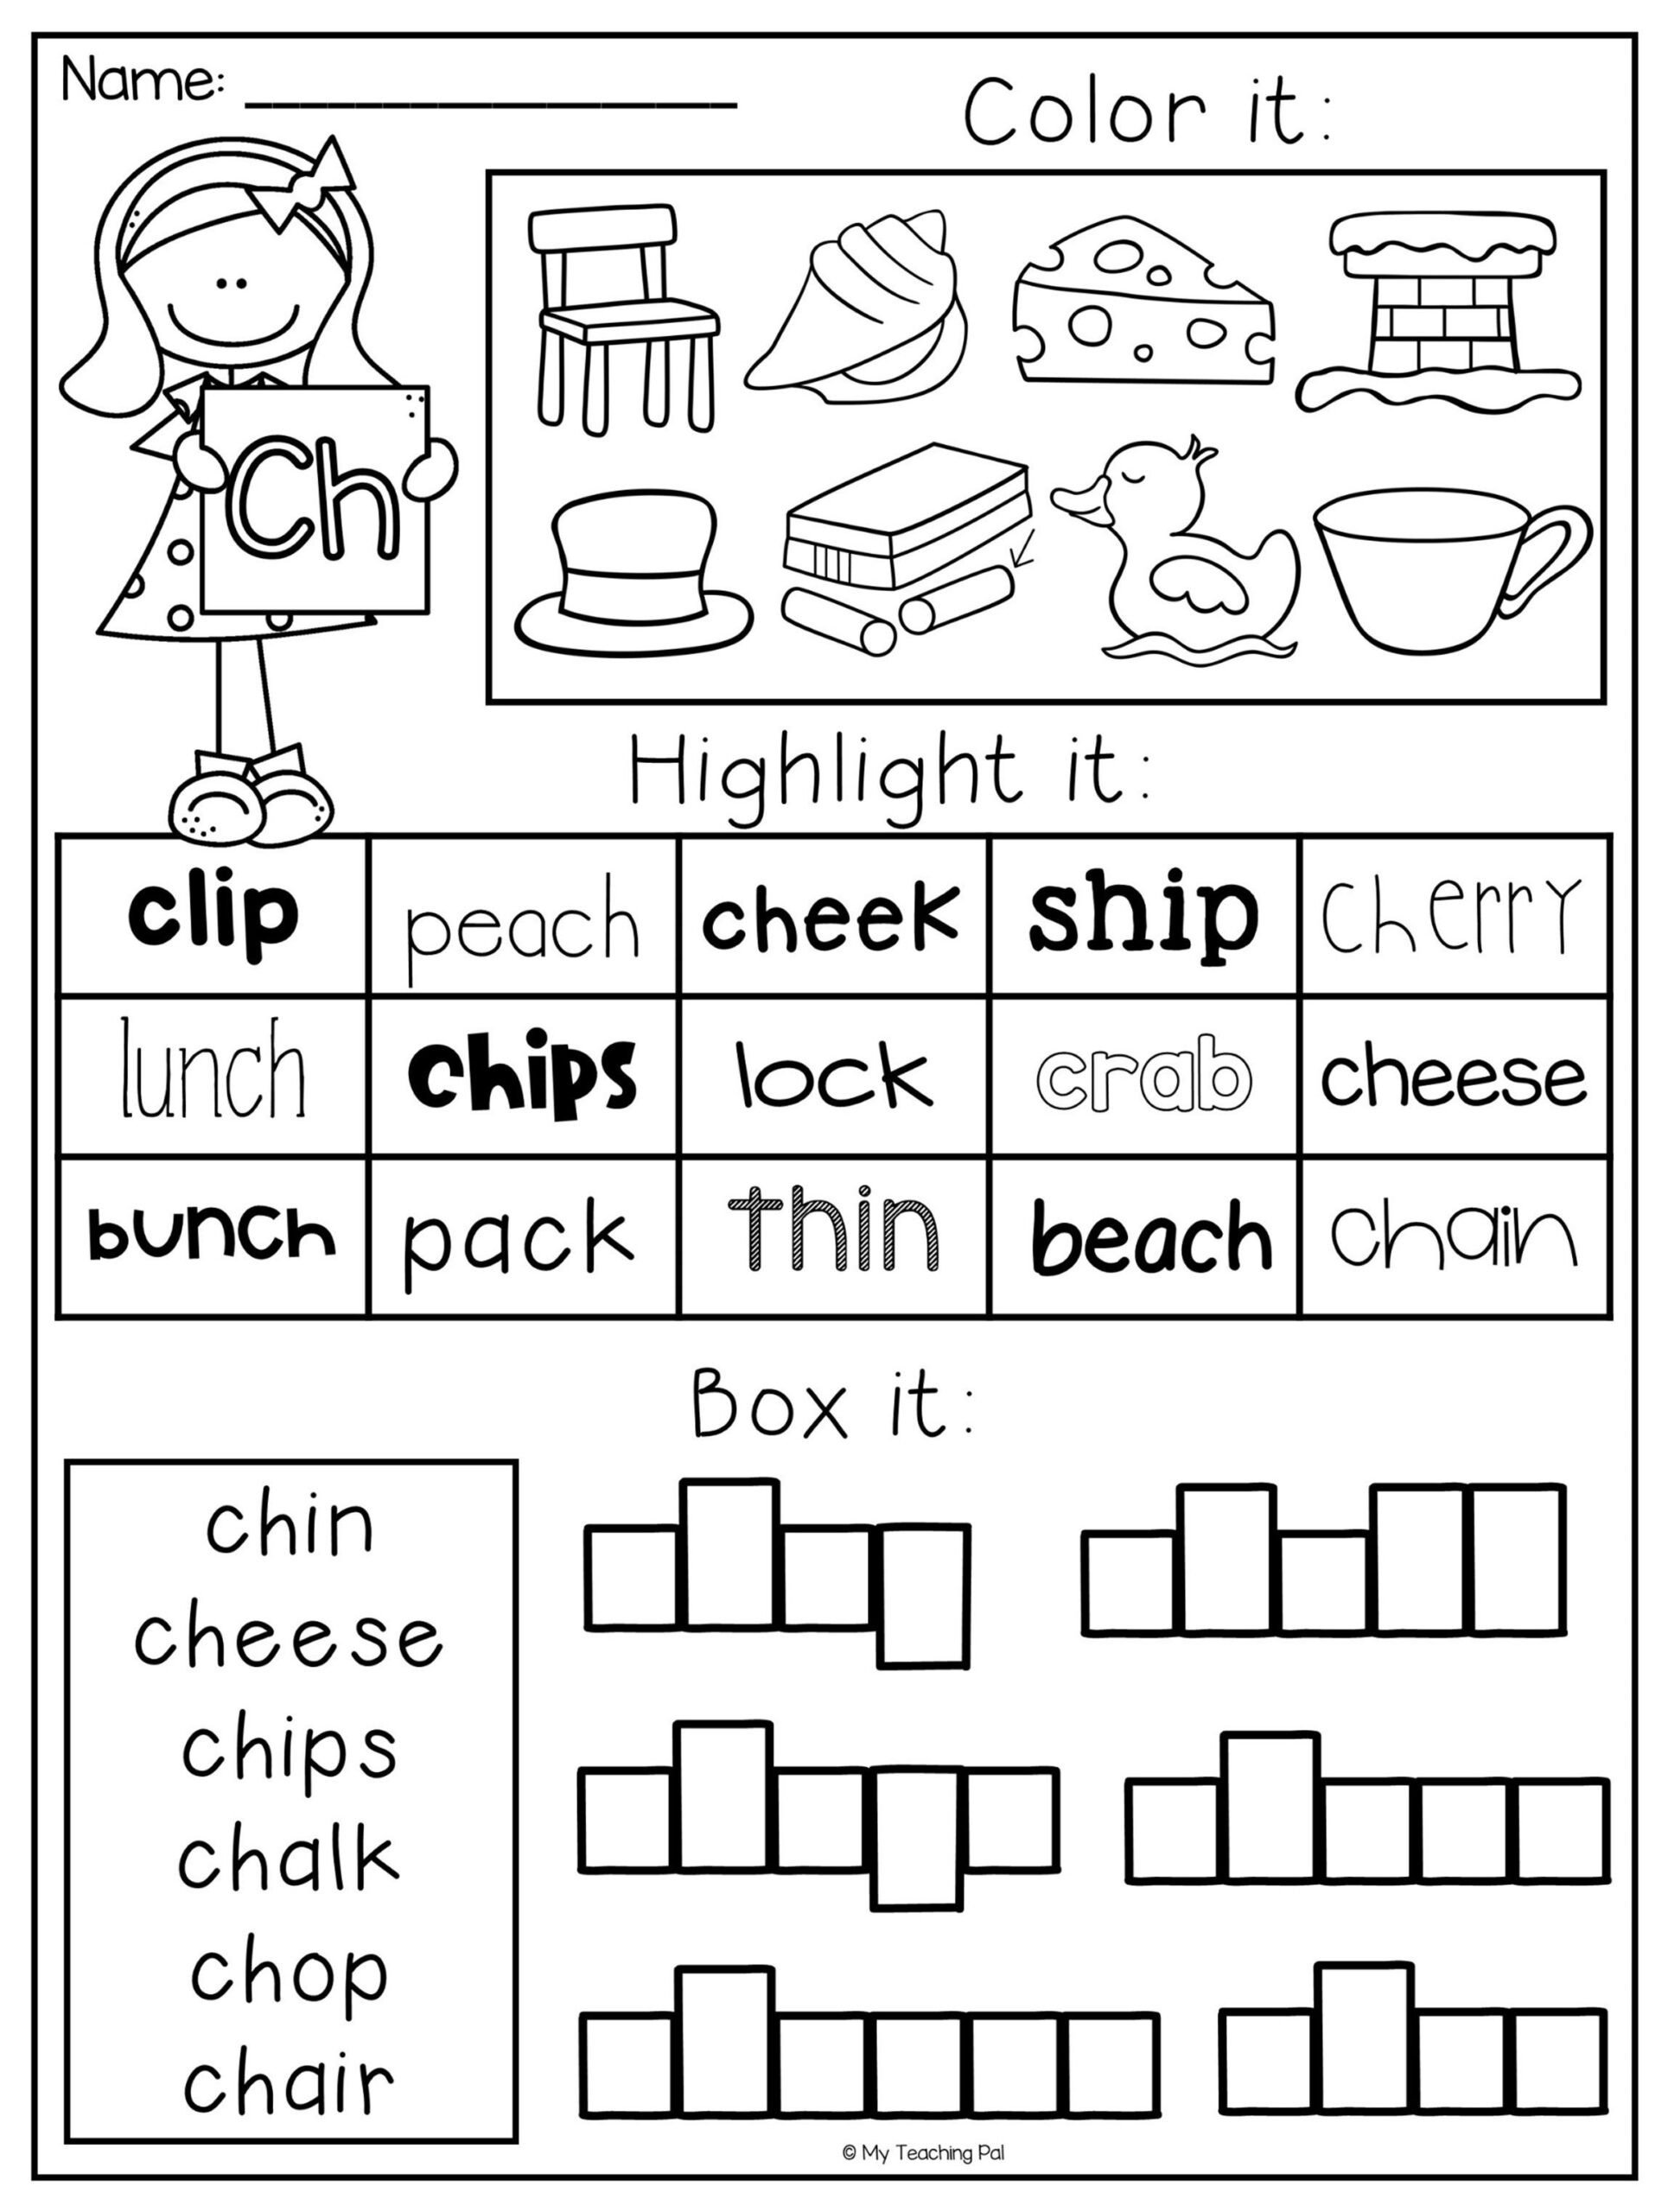 Wh Worksheets for Kindergarten Digraph Worksheet Packet Ch Th Wh Ph Digraphs Worksheets